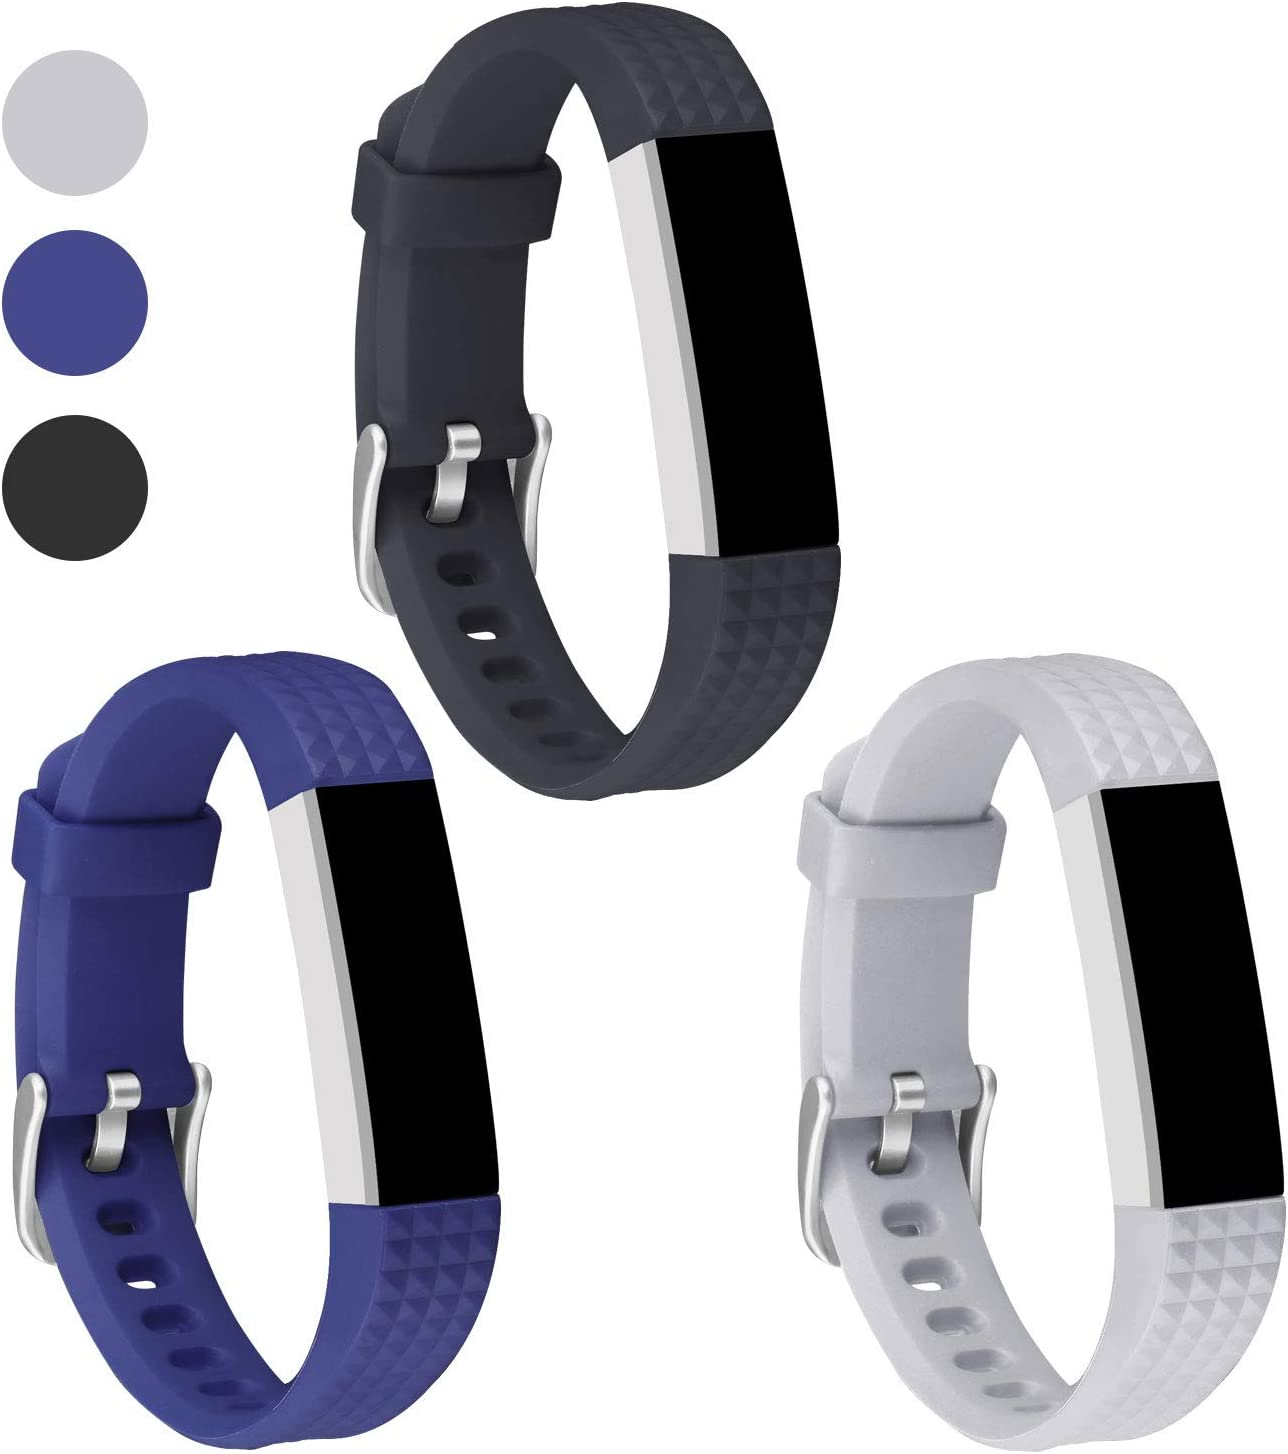 3-Pack Silicone Sport Smart Fitness Tracker Wristband with Metal Buckle for Women Men Kids UMAXGET Compatible with Fitbit Alta//Alta Hr//Fitbit Ace Bands